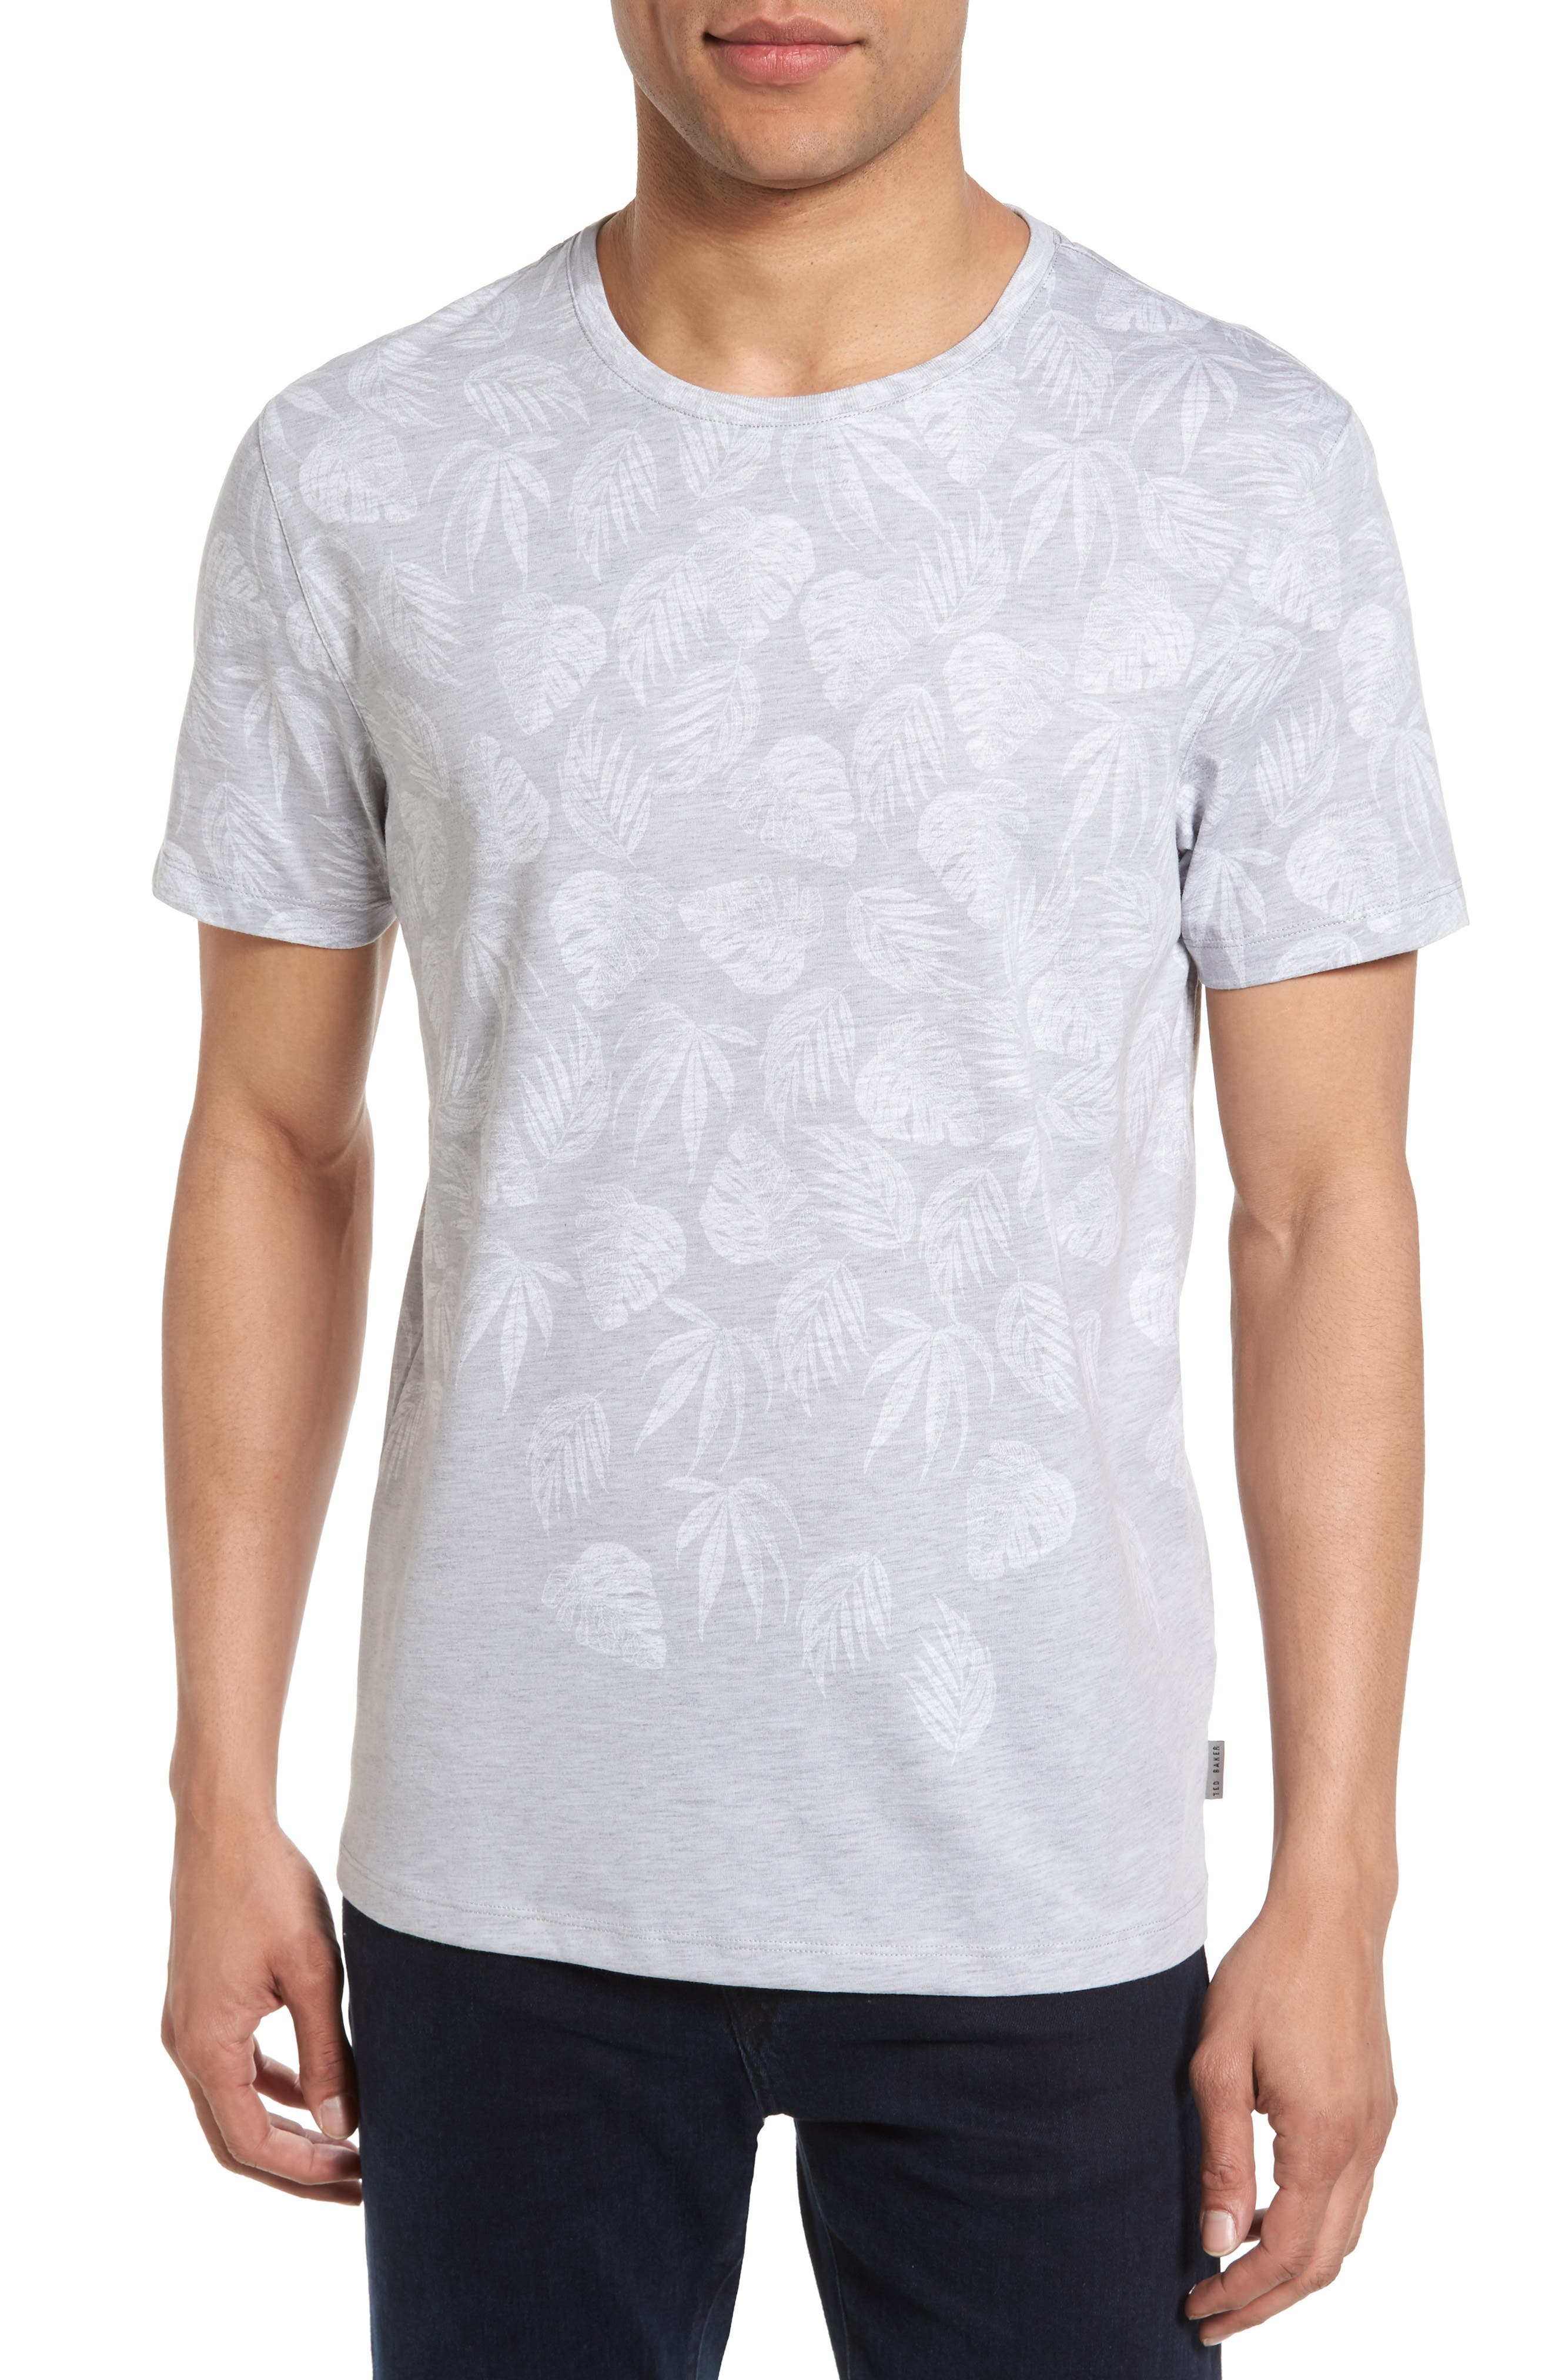 Ted Baker London Montana Leaf Graphic T-Shirt